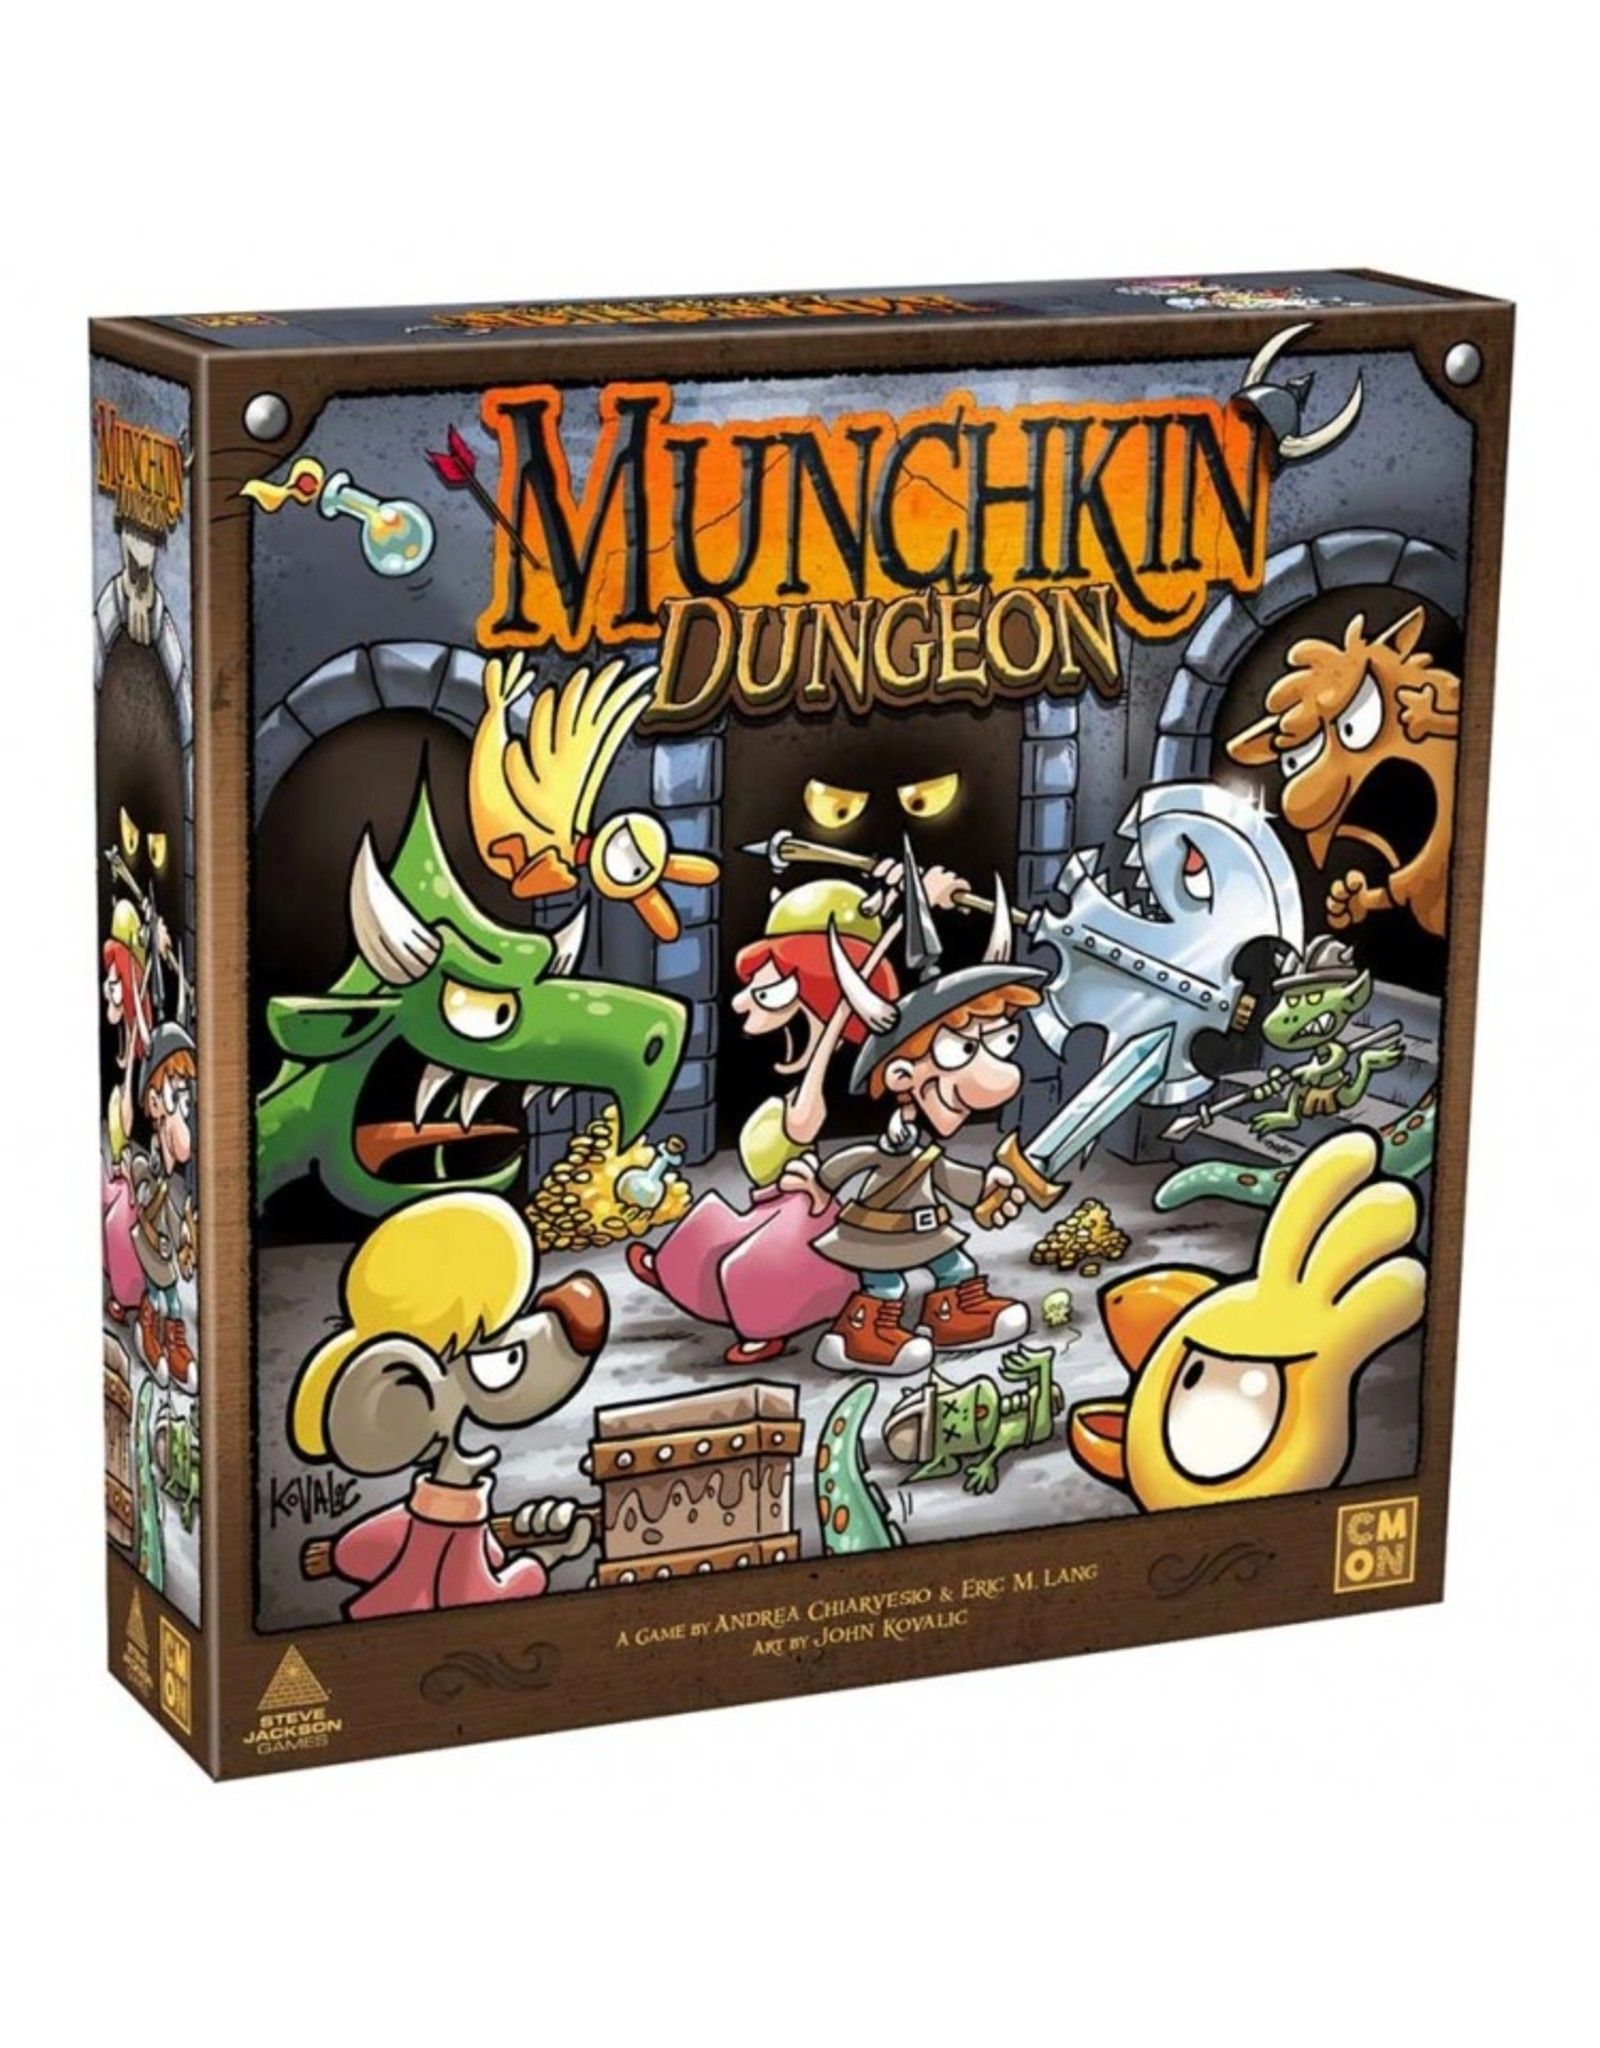 Cool Mini or Not Munchkin Dungeon